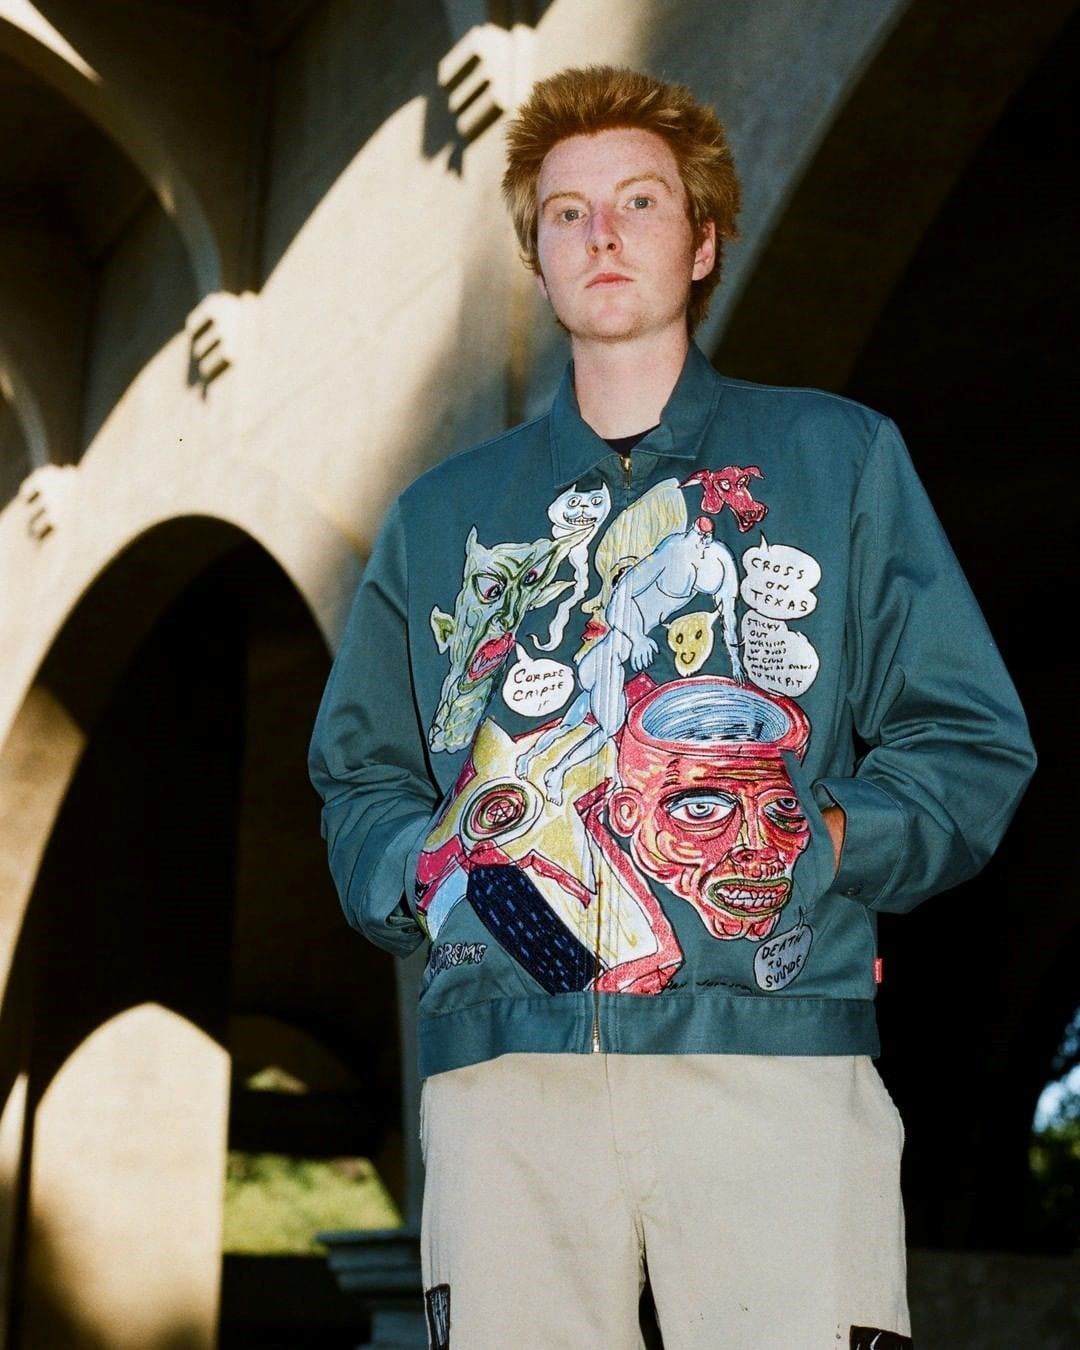 Supreme capsule collection featuring artwork by legendary musician Daniel Johnston - Green jacket.